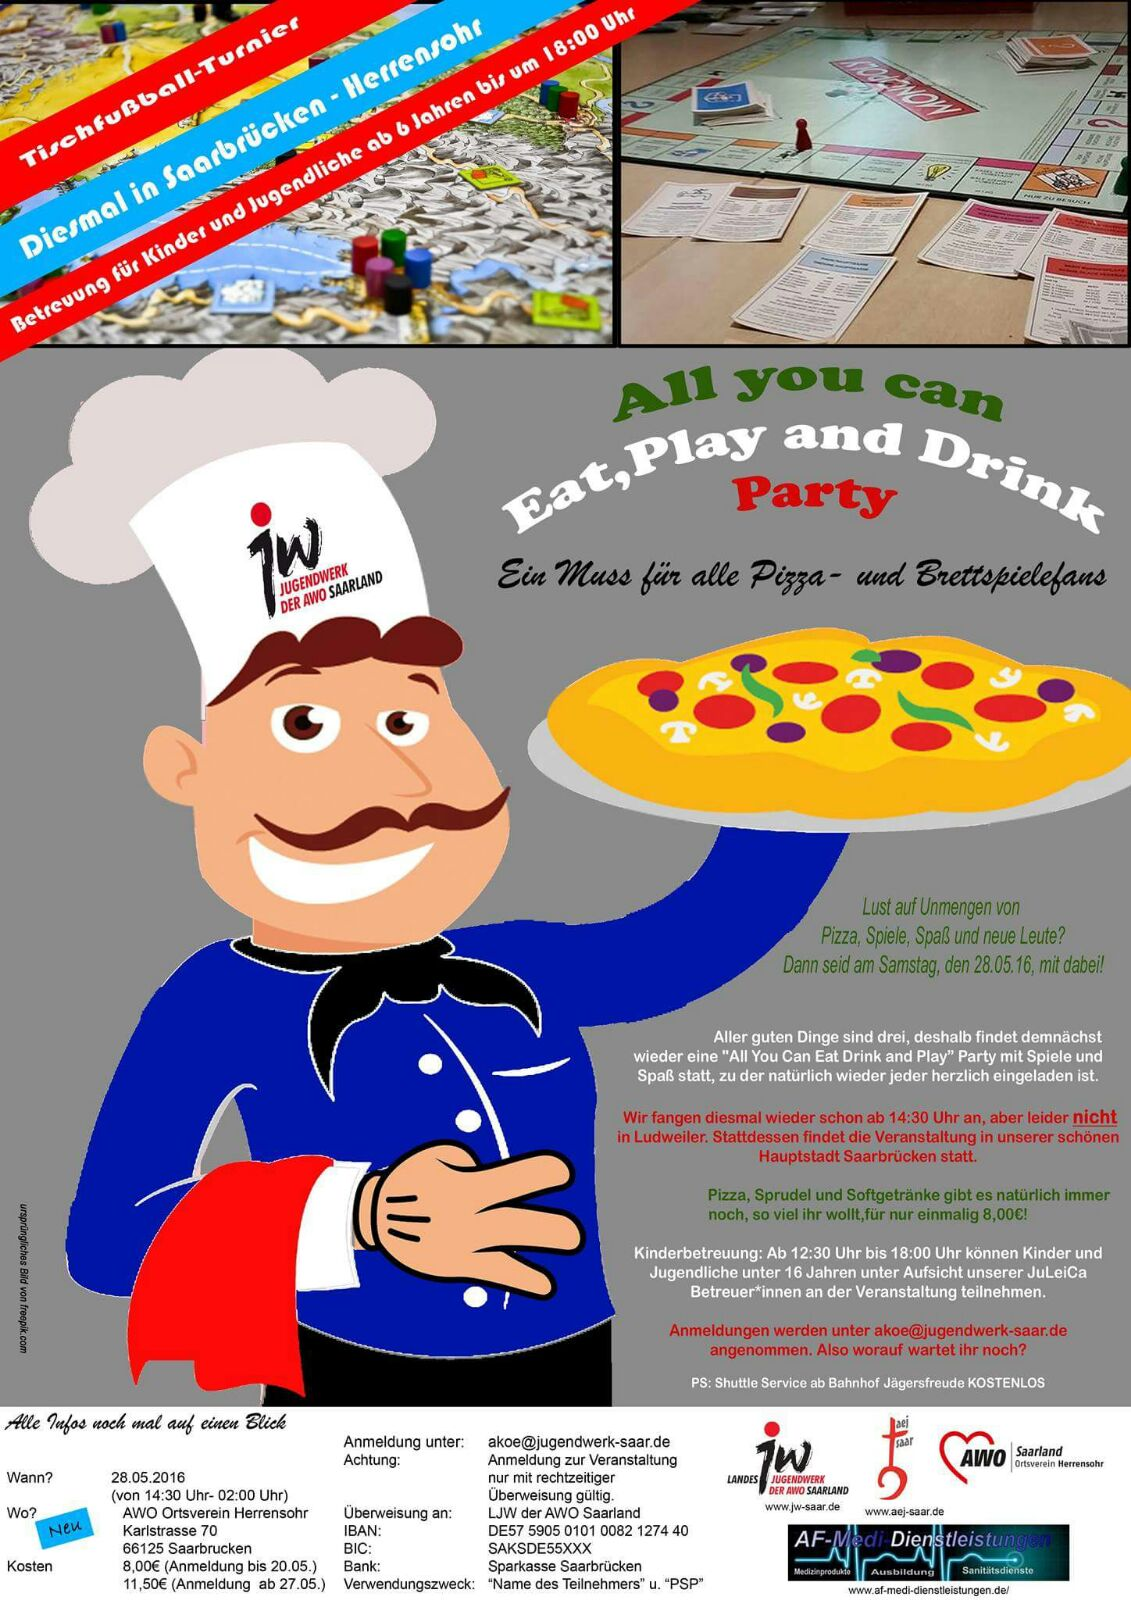 All you can Eat, Drink an Play Pizza-Party – aej saar